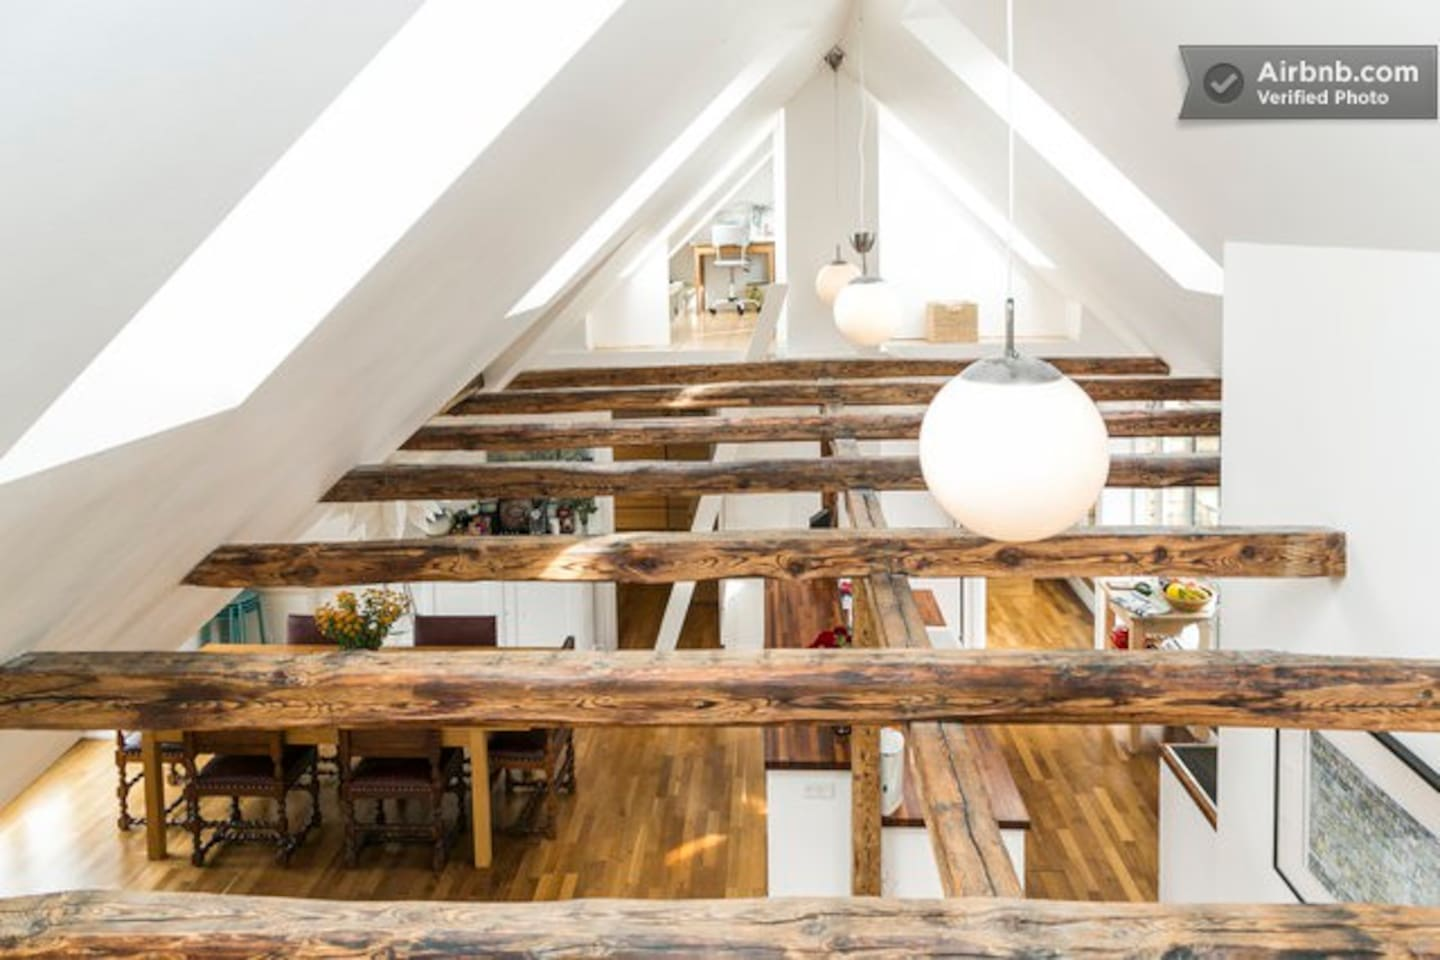 A view over the beams from one loft room to the other loft room.